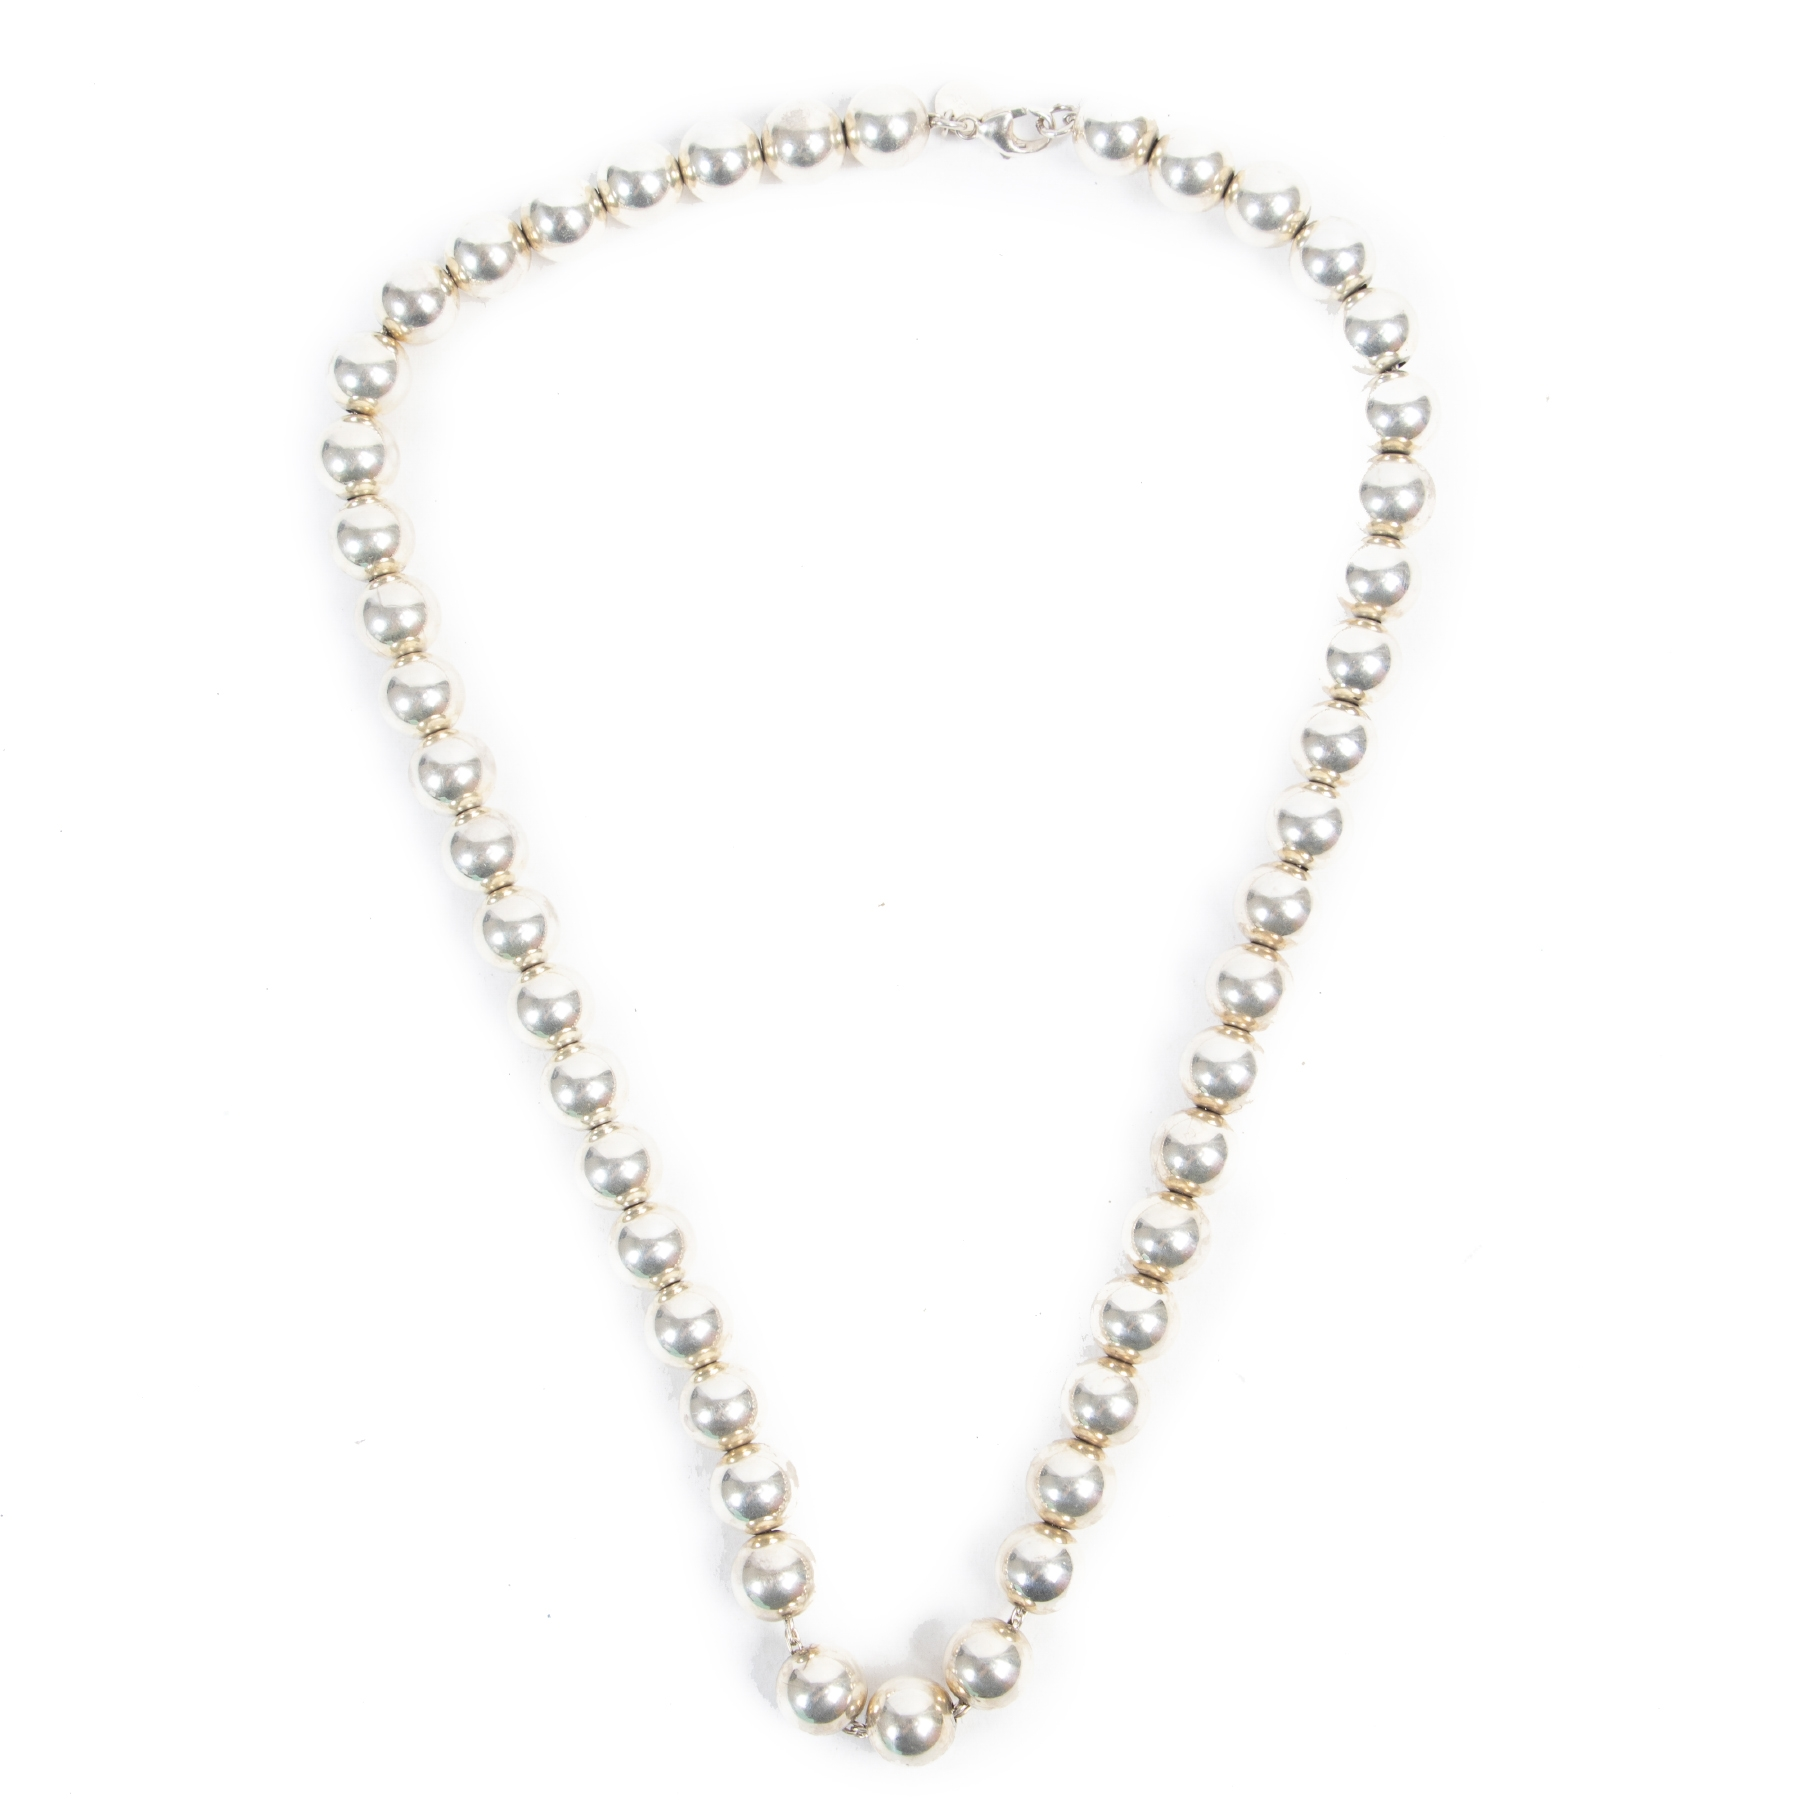 Tiffany & Co City HardWear Ball Necklace for the best price at Labellov secondhand